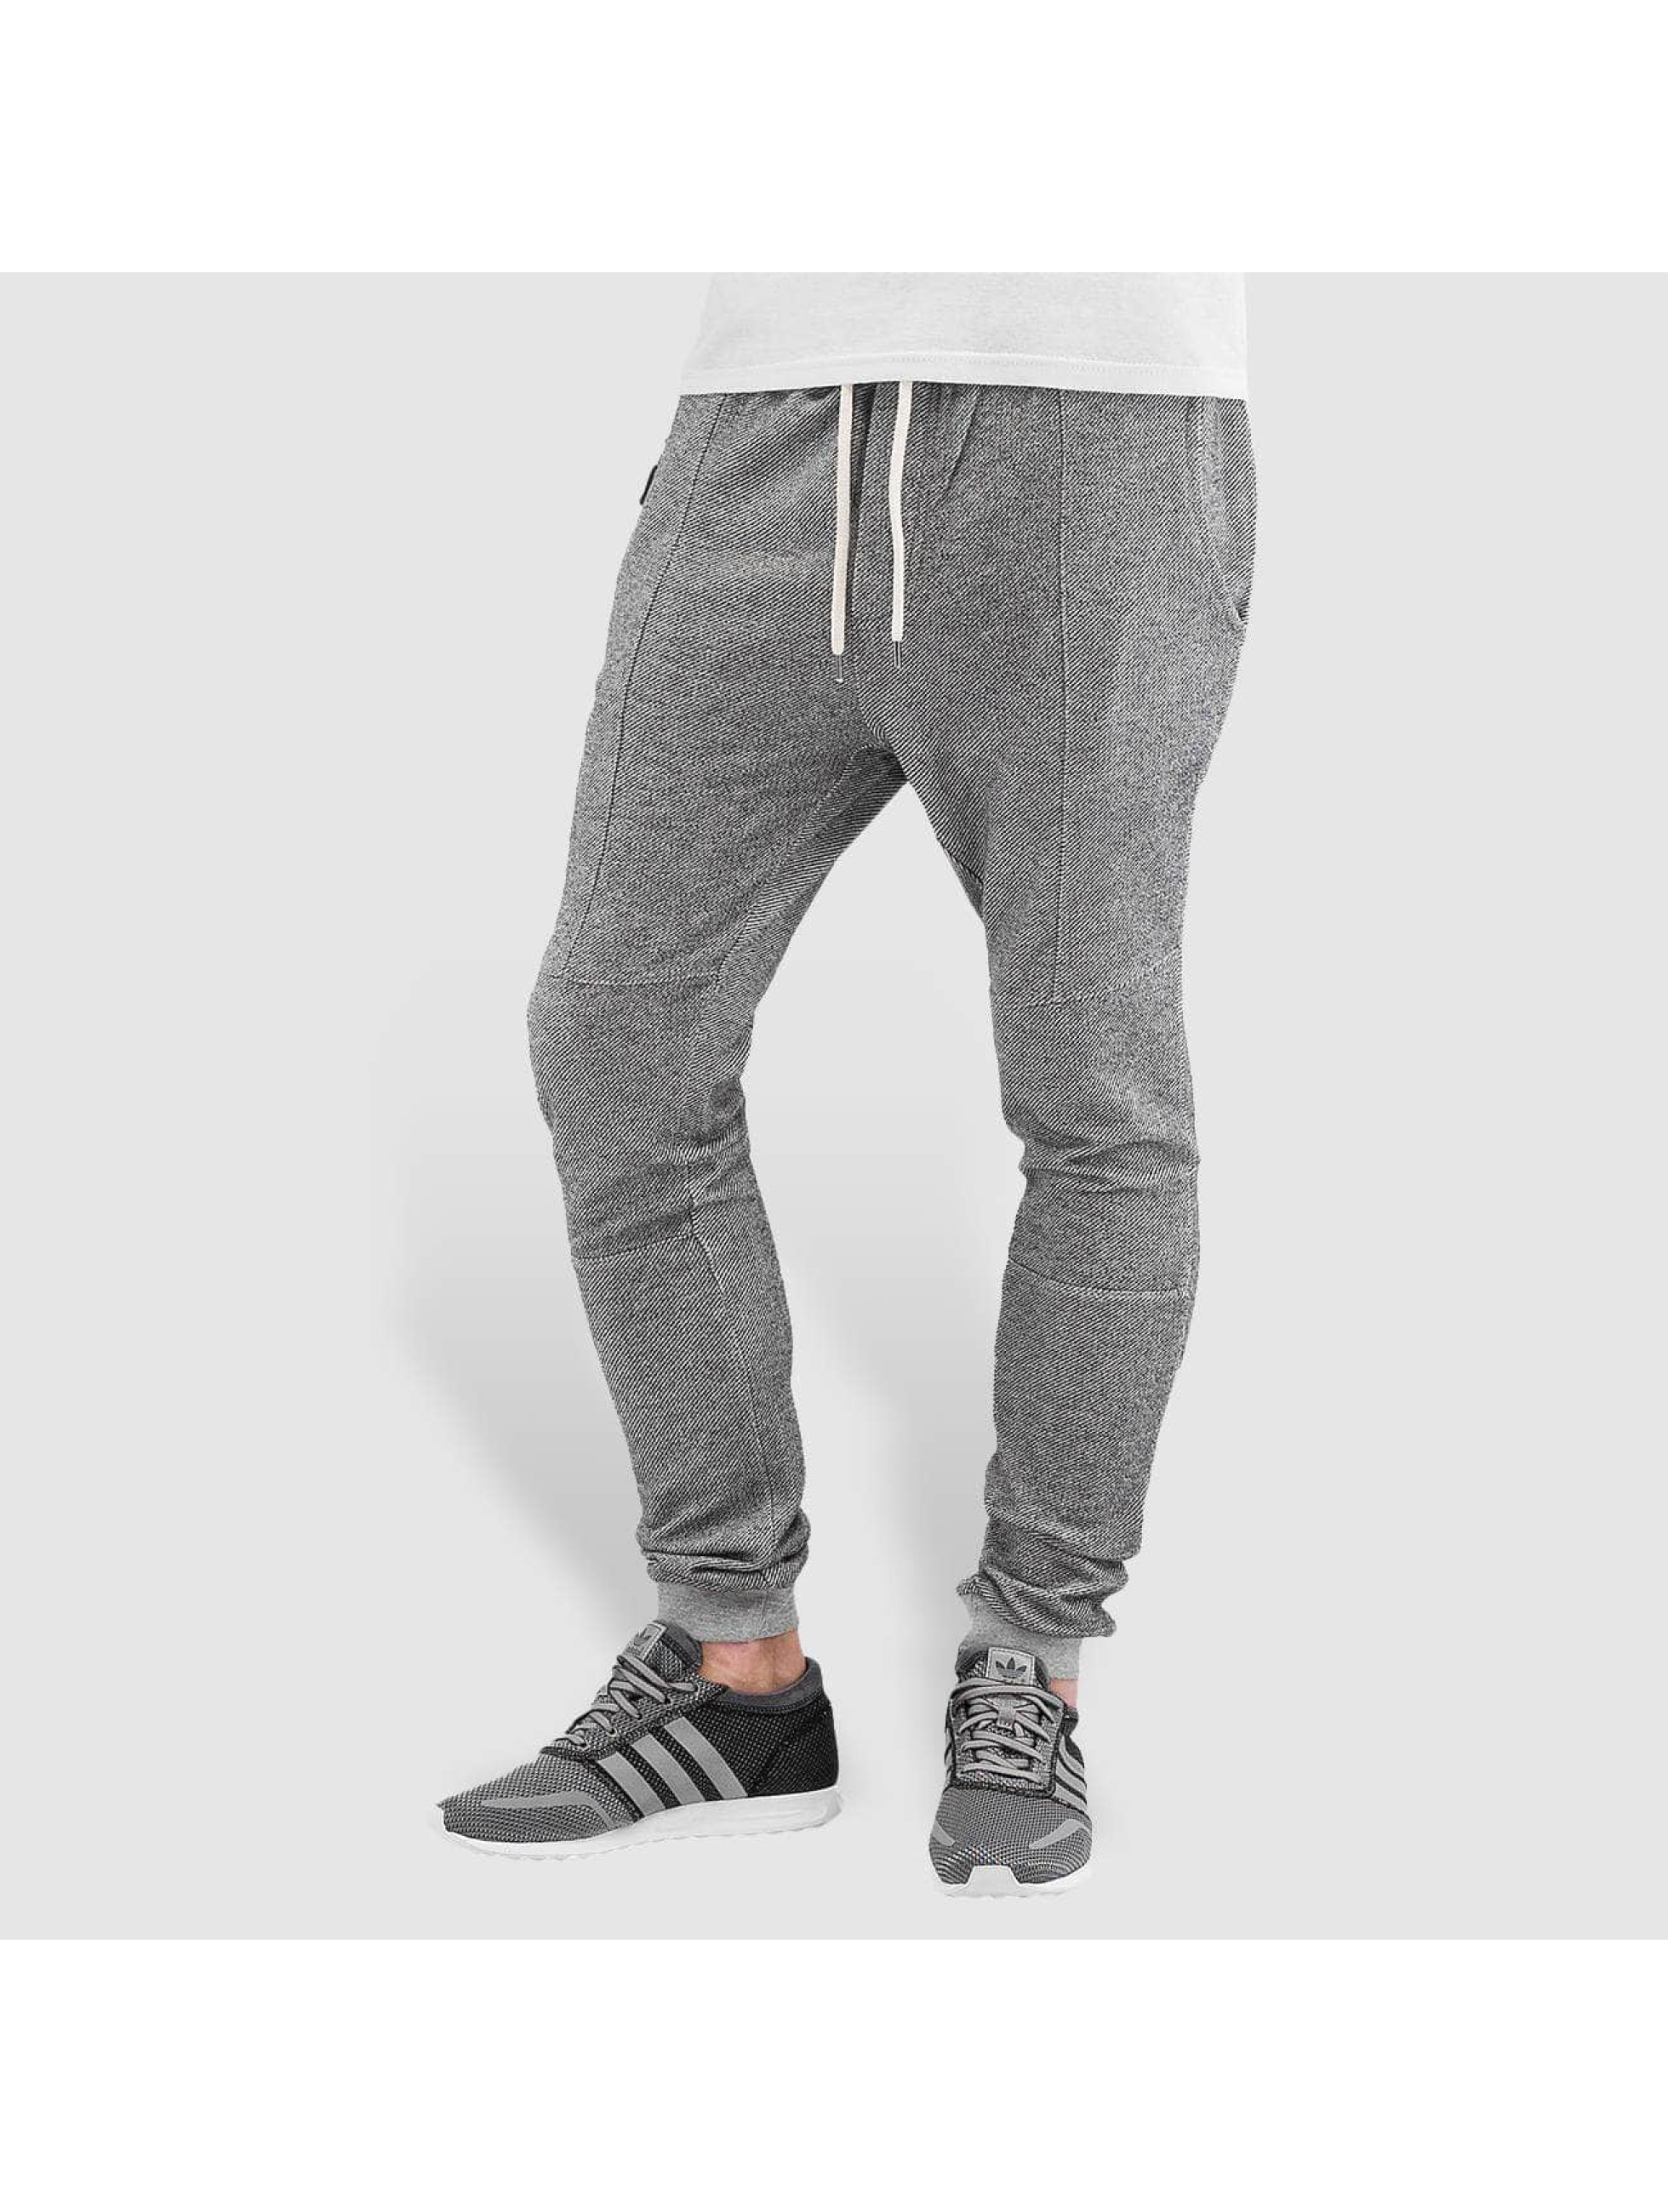 Reell Jeans Männer Jogginghose Sweat in grau